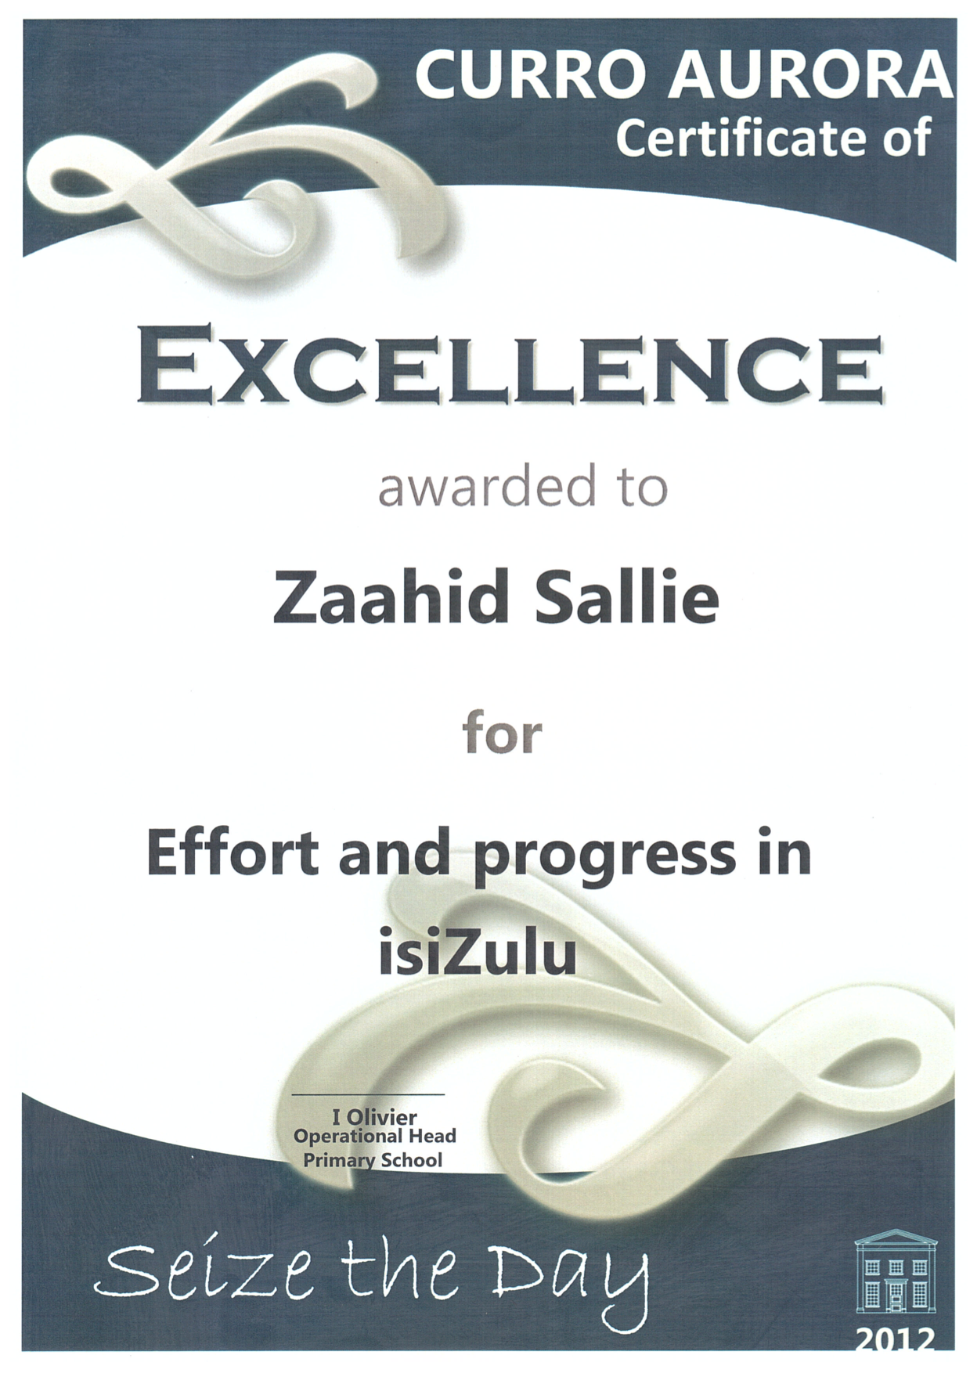 2012 Progress in isiZulu.png